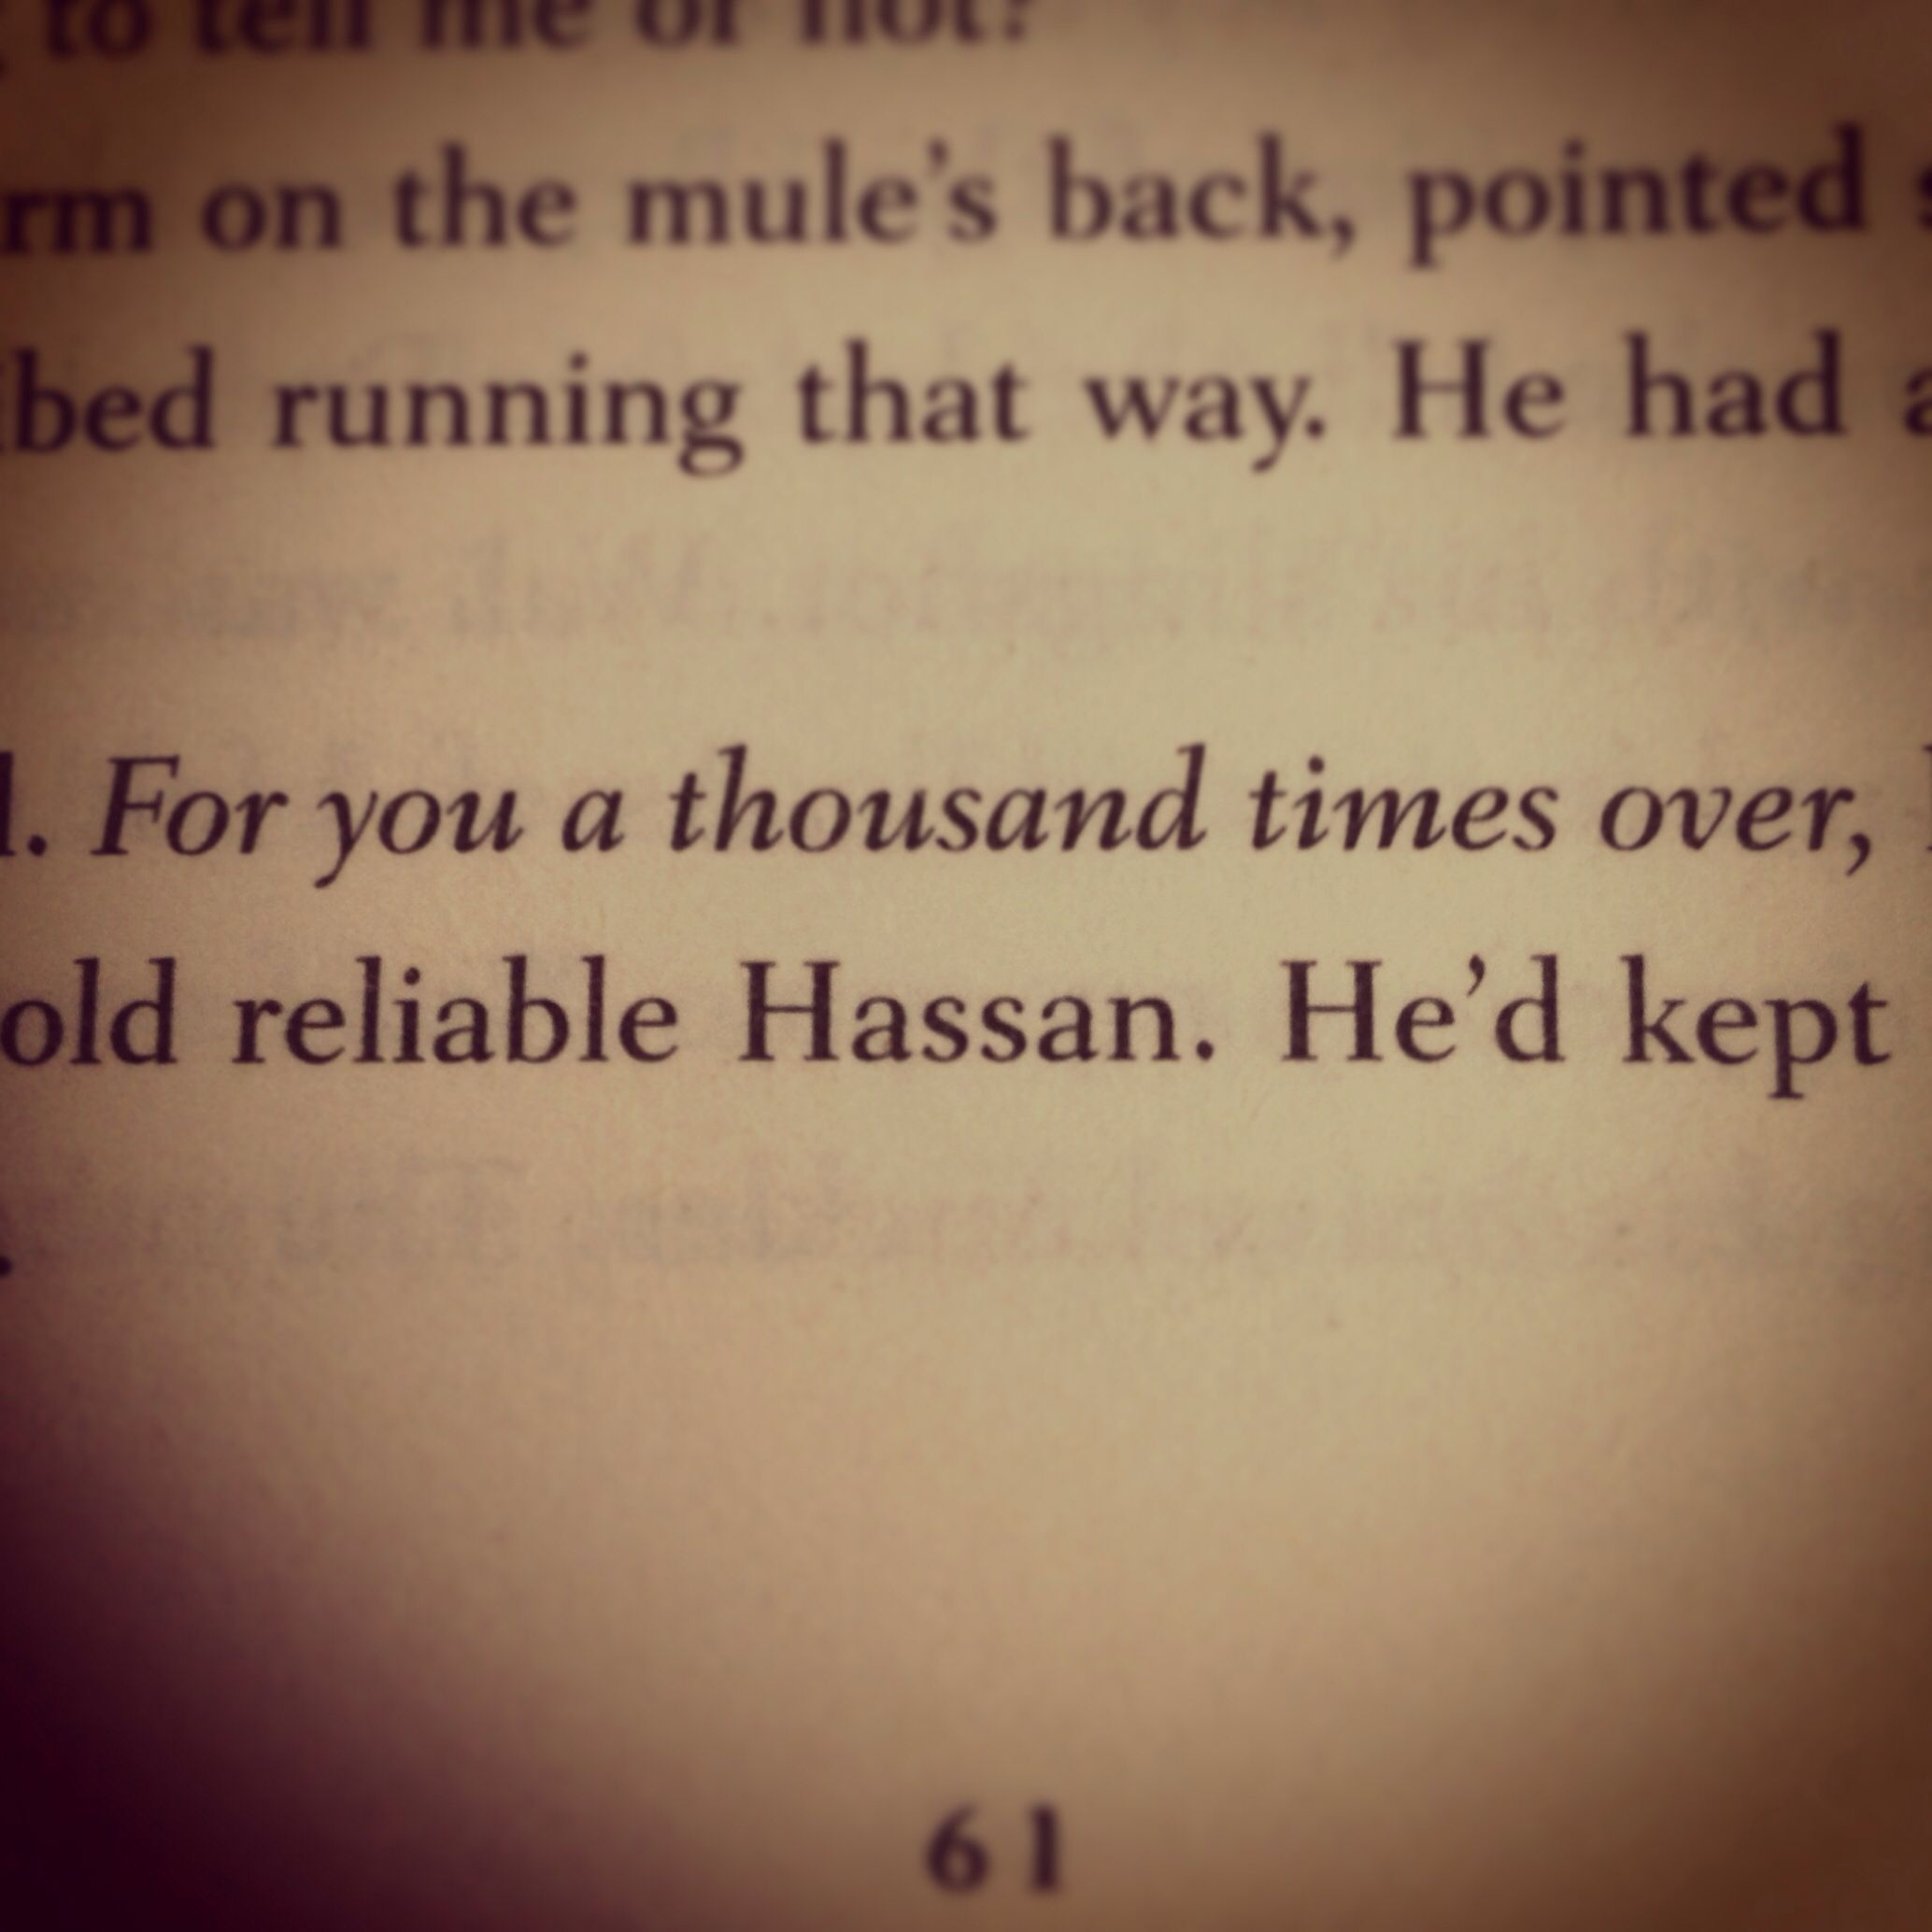 The Kite Runner By Khaled Hosseini For You A Thousand Times Over